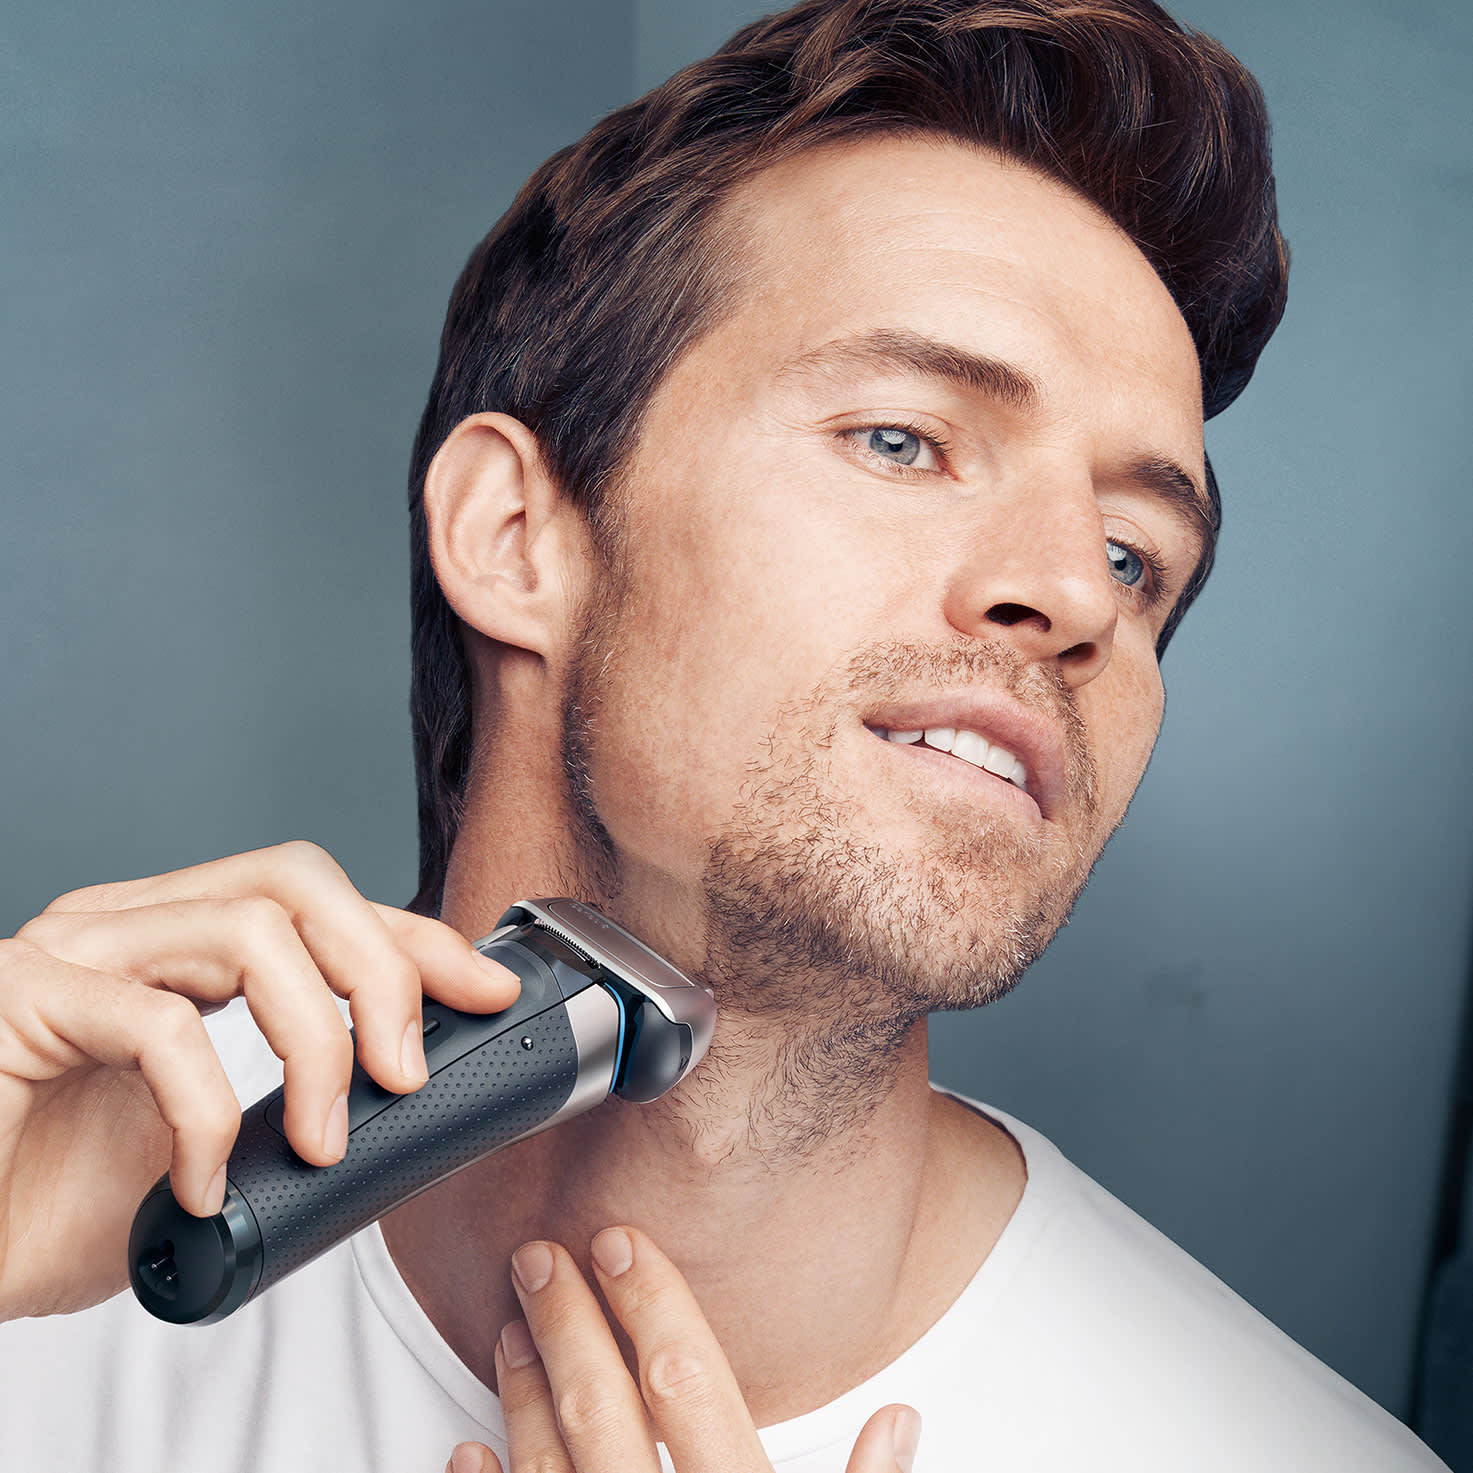 Series 8 8390cc shaver - in use